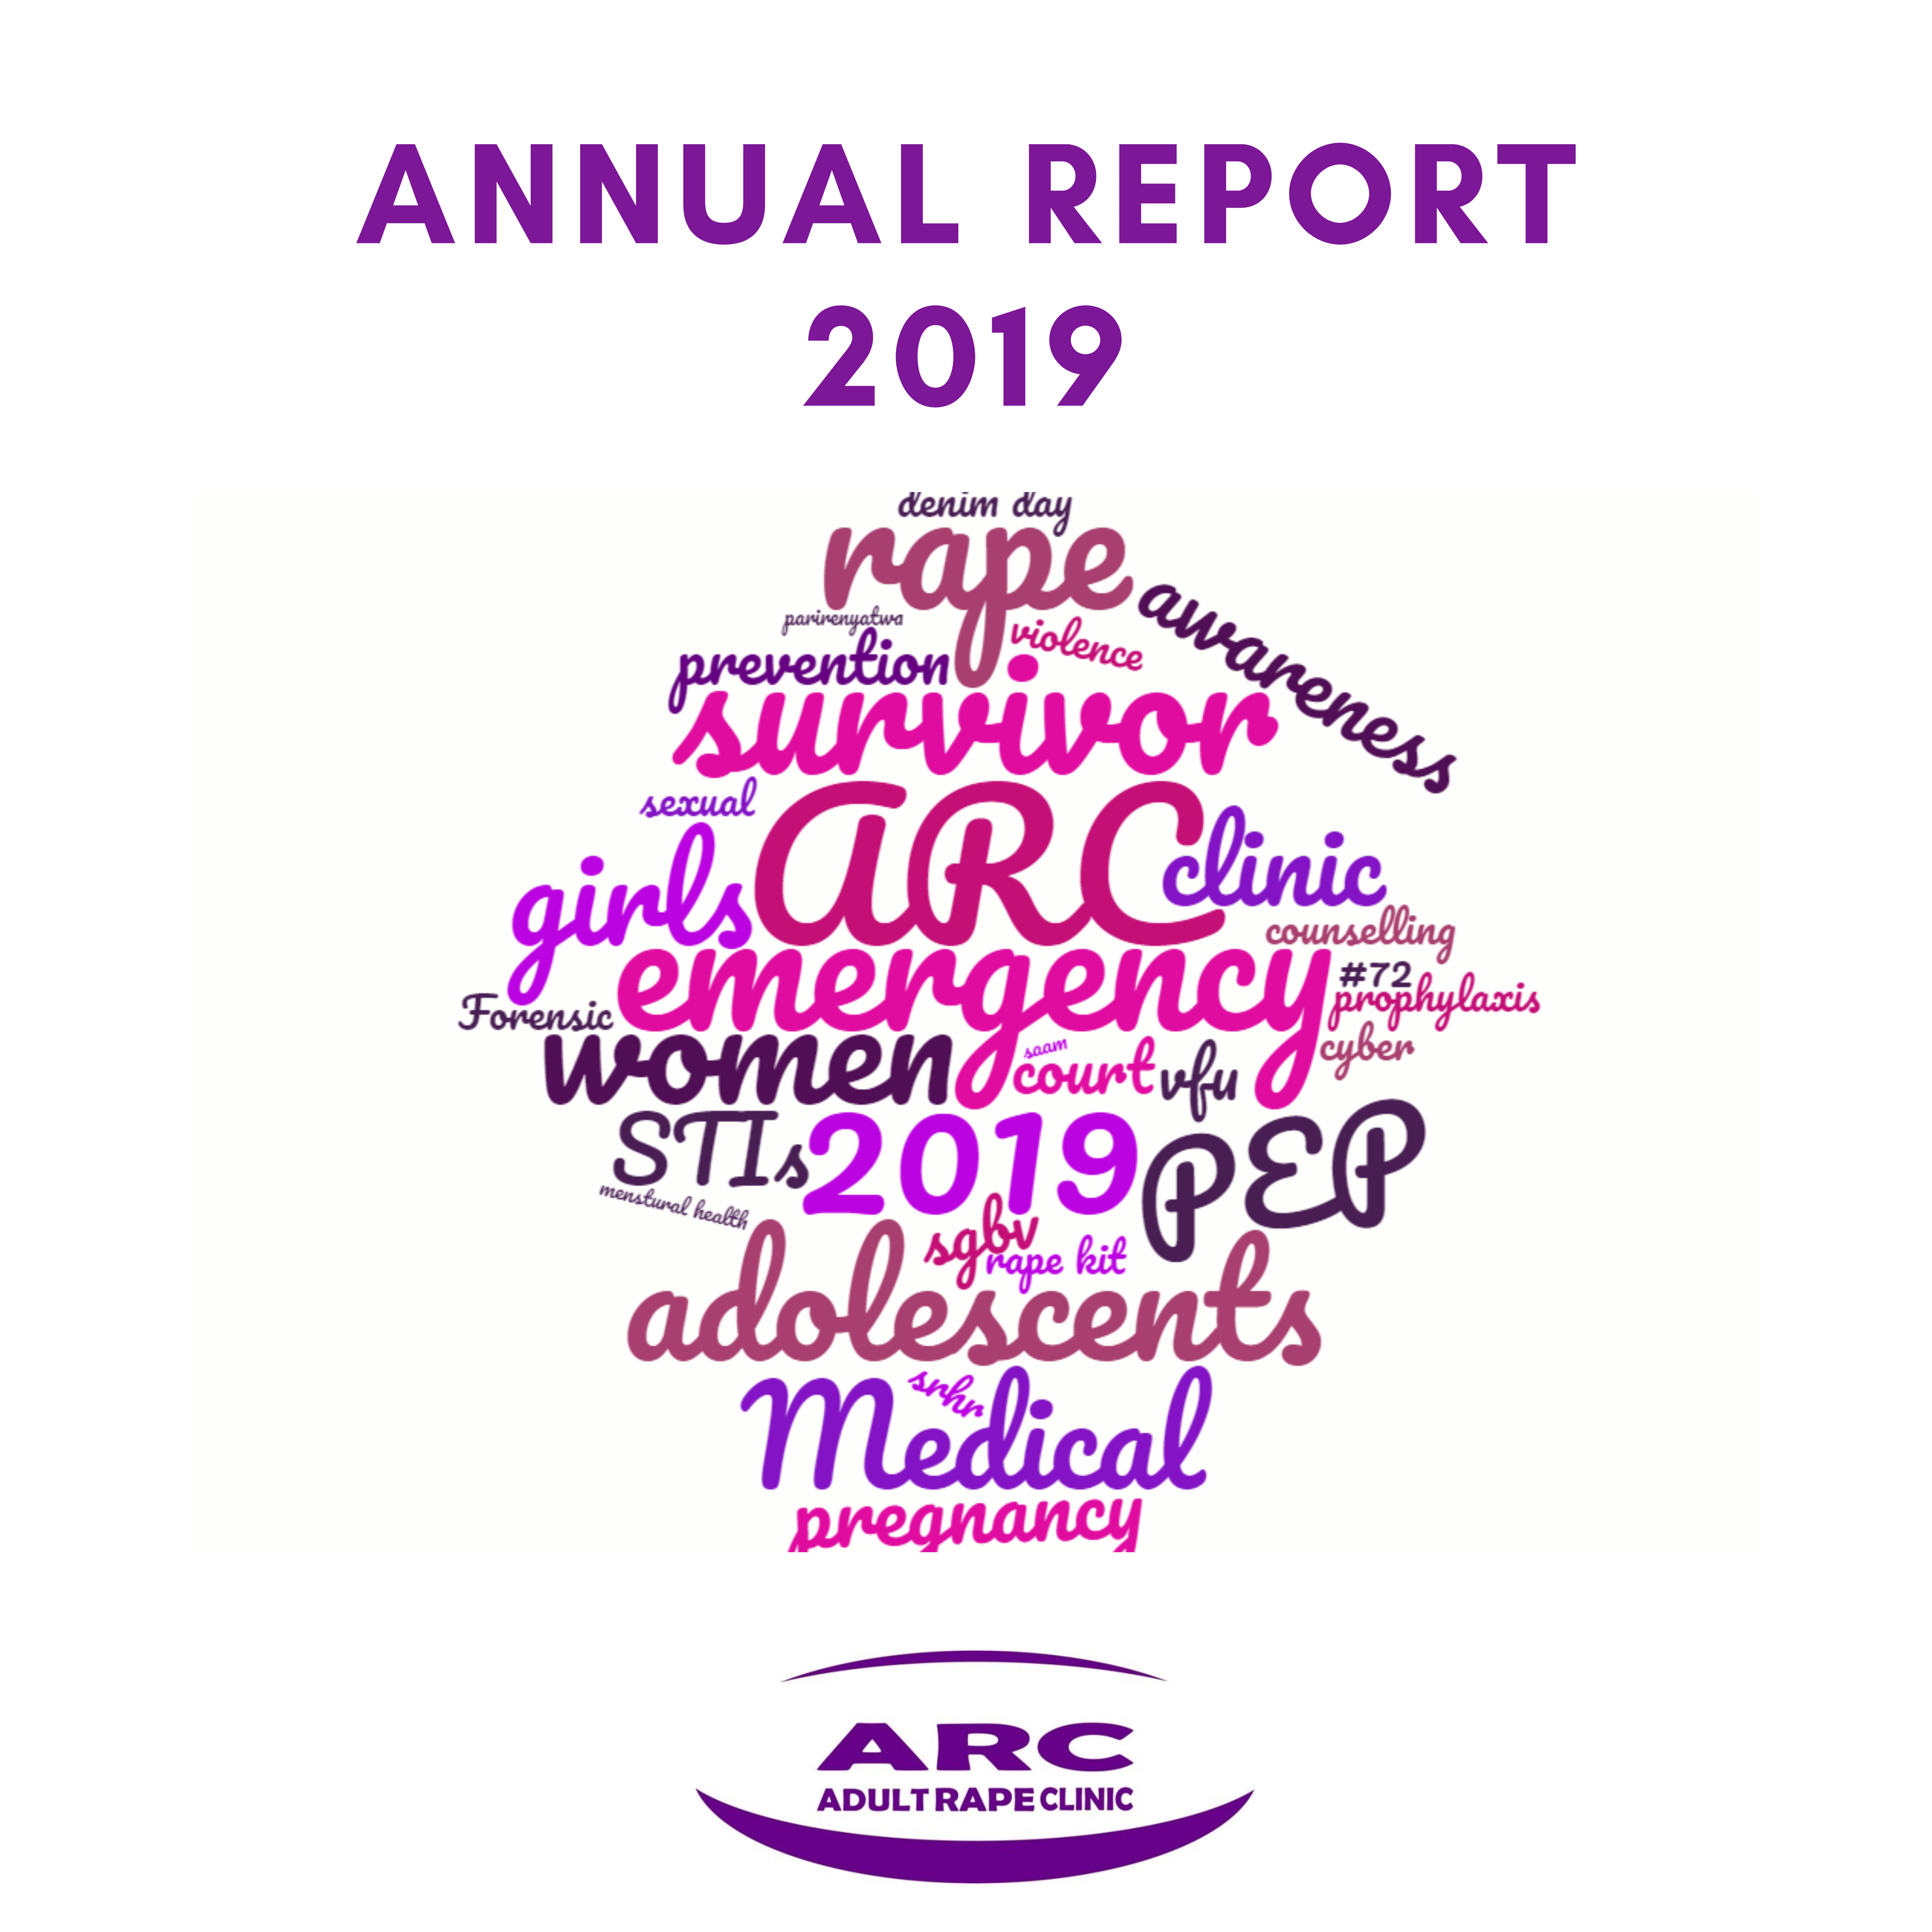 http://www.adultrapeclinic.org.zw/wp-content/uploads/2021/08/Copy-of-ANNUAL-REPORT-20191.png